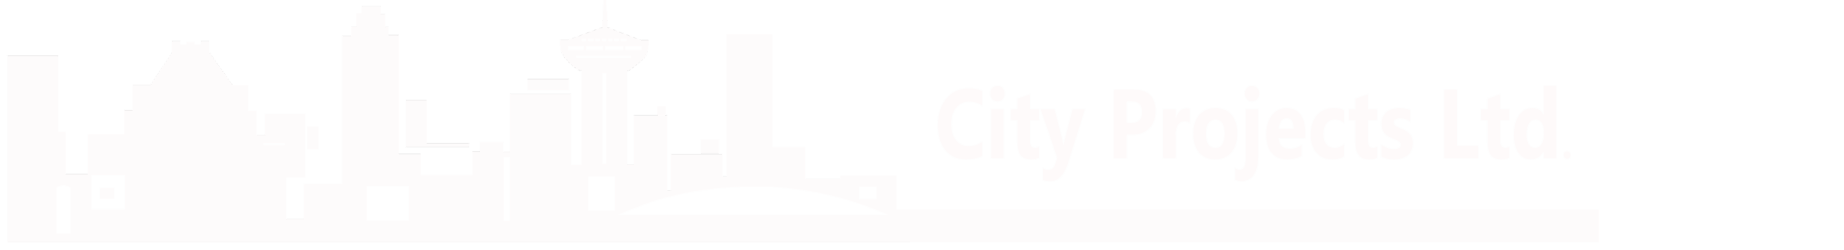 City Projects Ltd